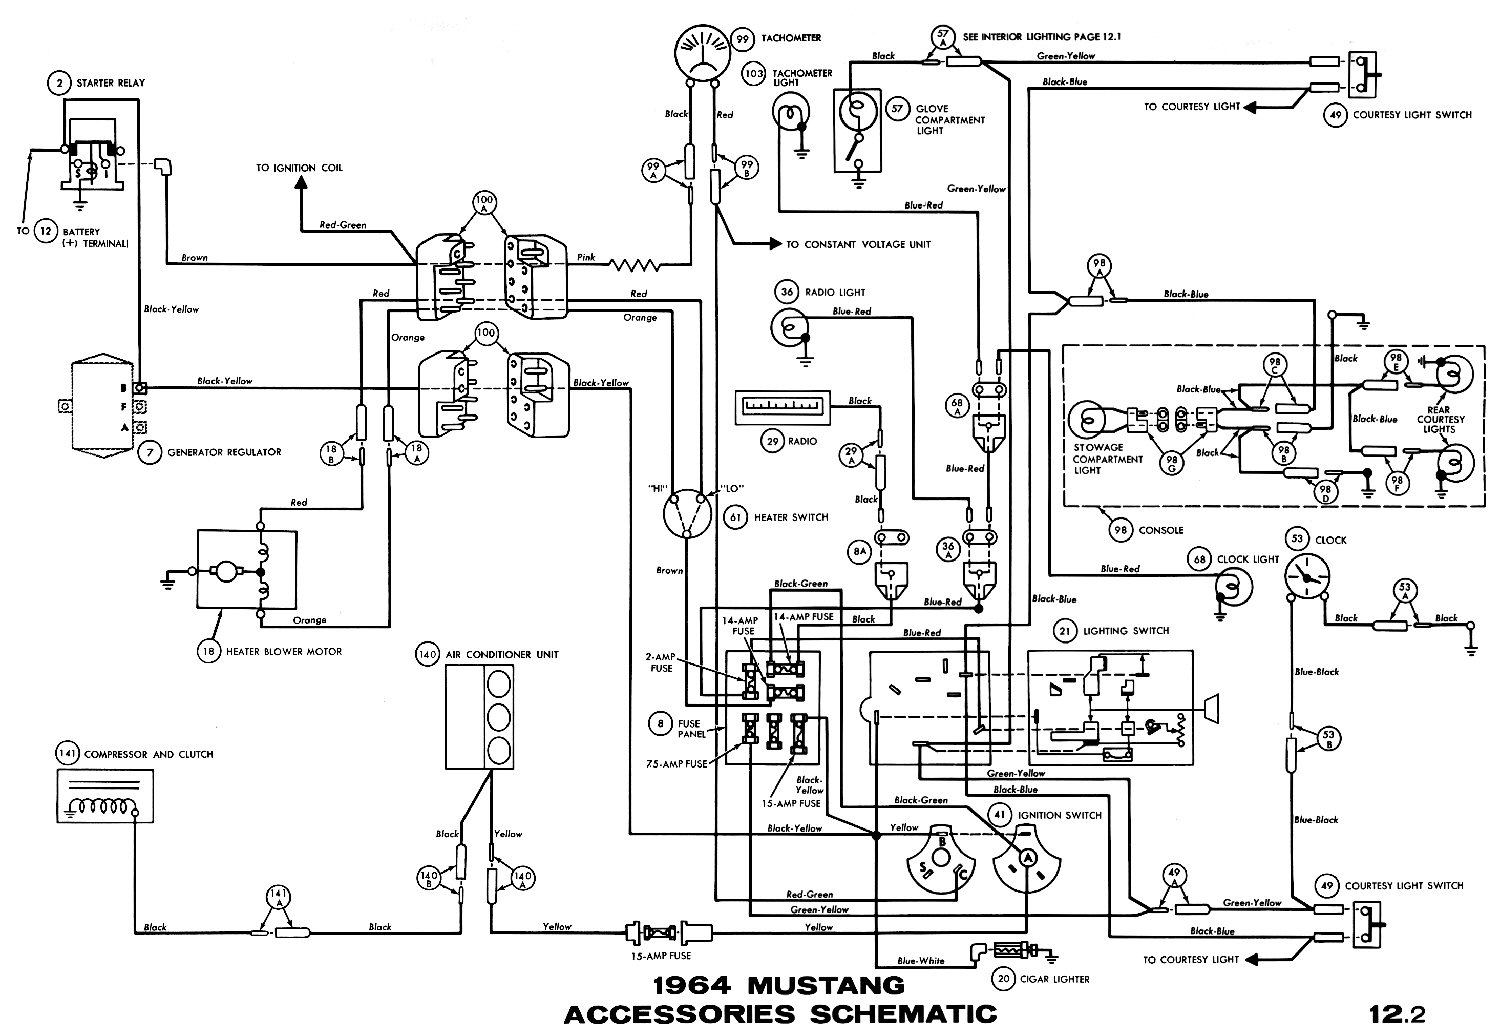 86 mustang heater diagram free download wiring diagram